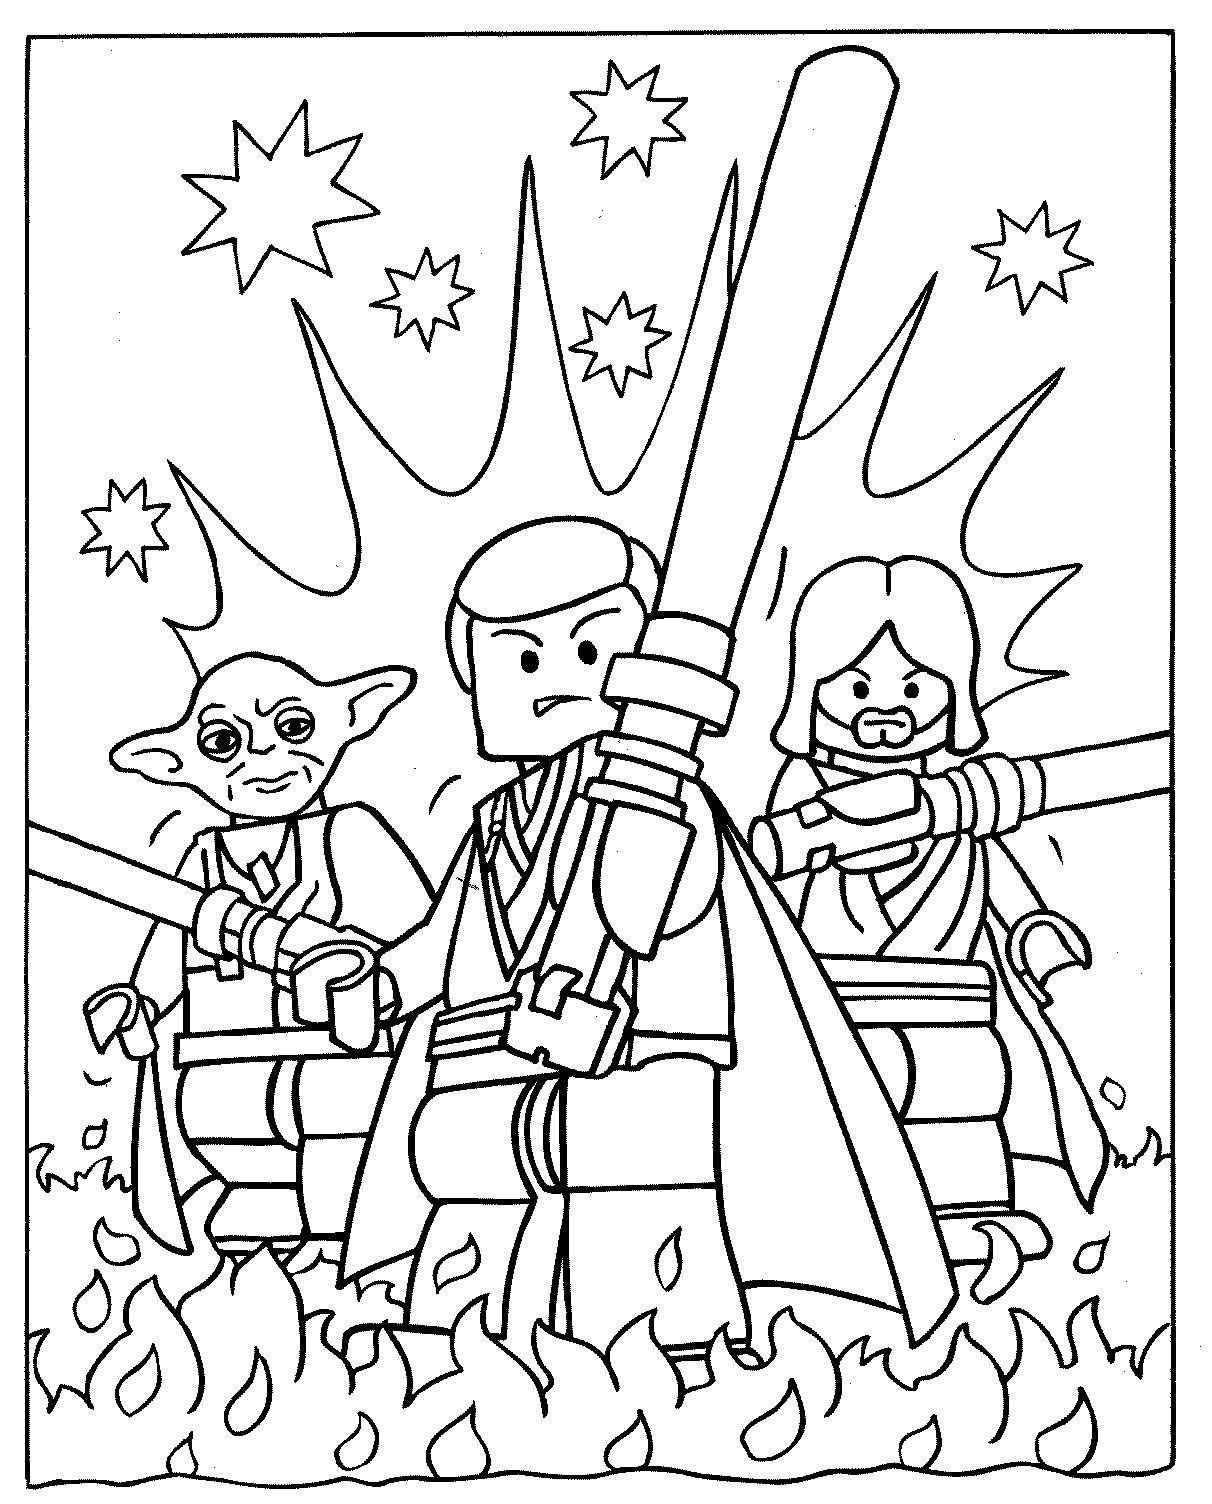 Lego coloring pages // Páginas para colorear de Lego | Coloring ...